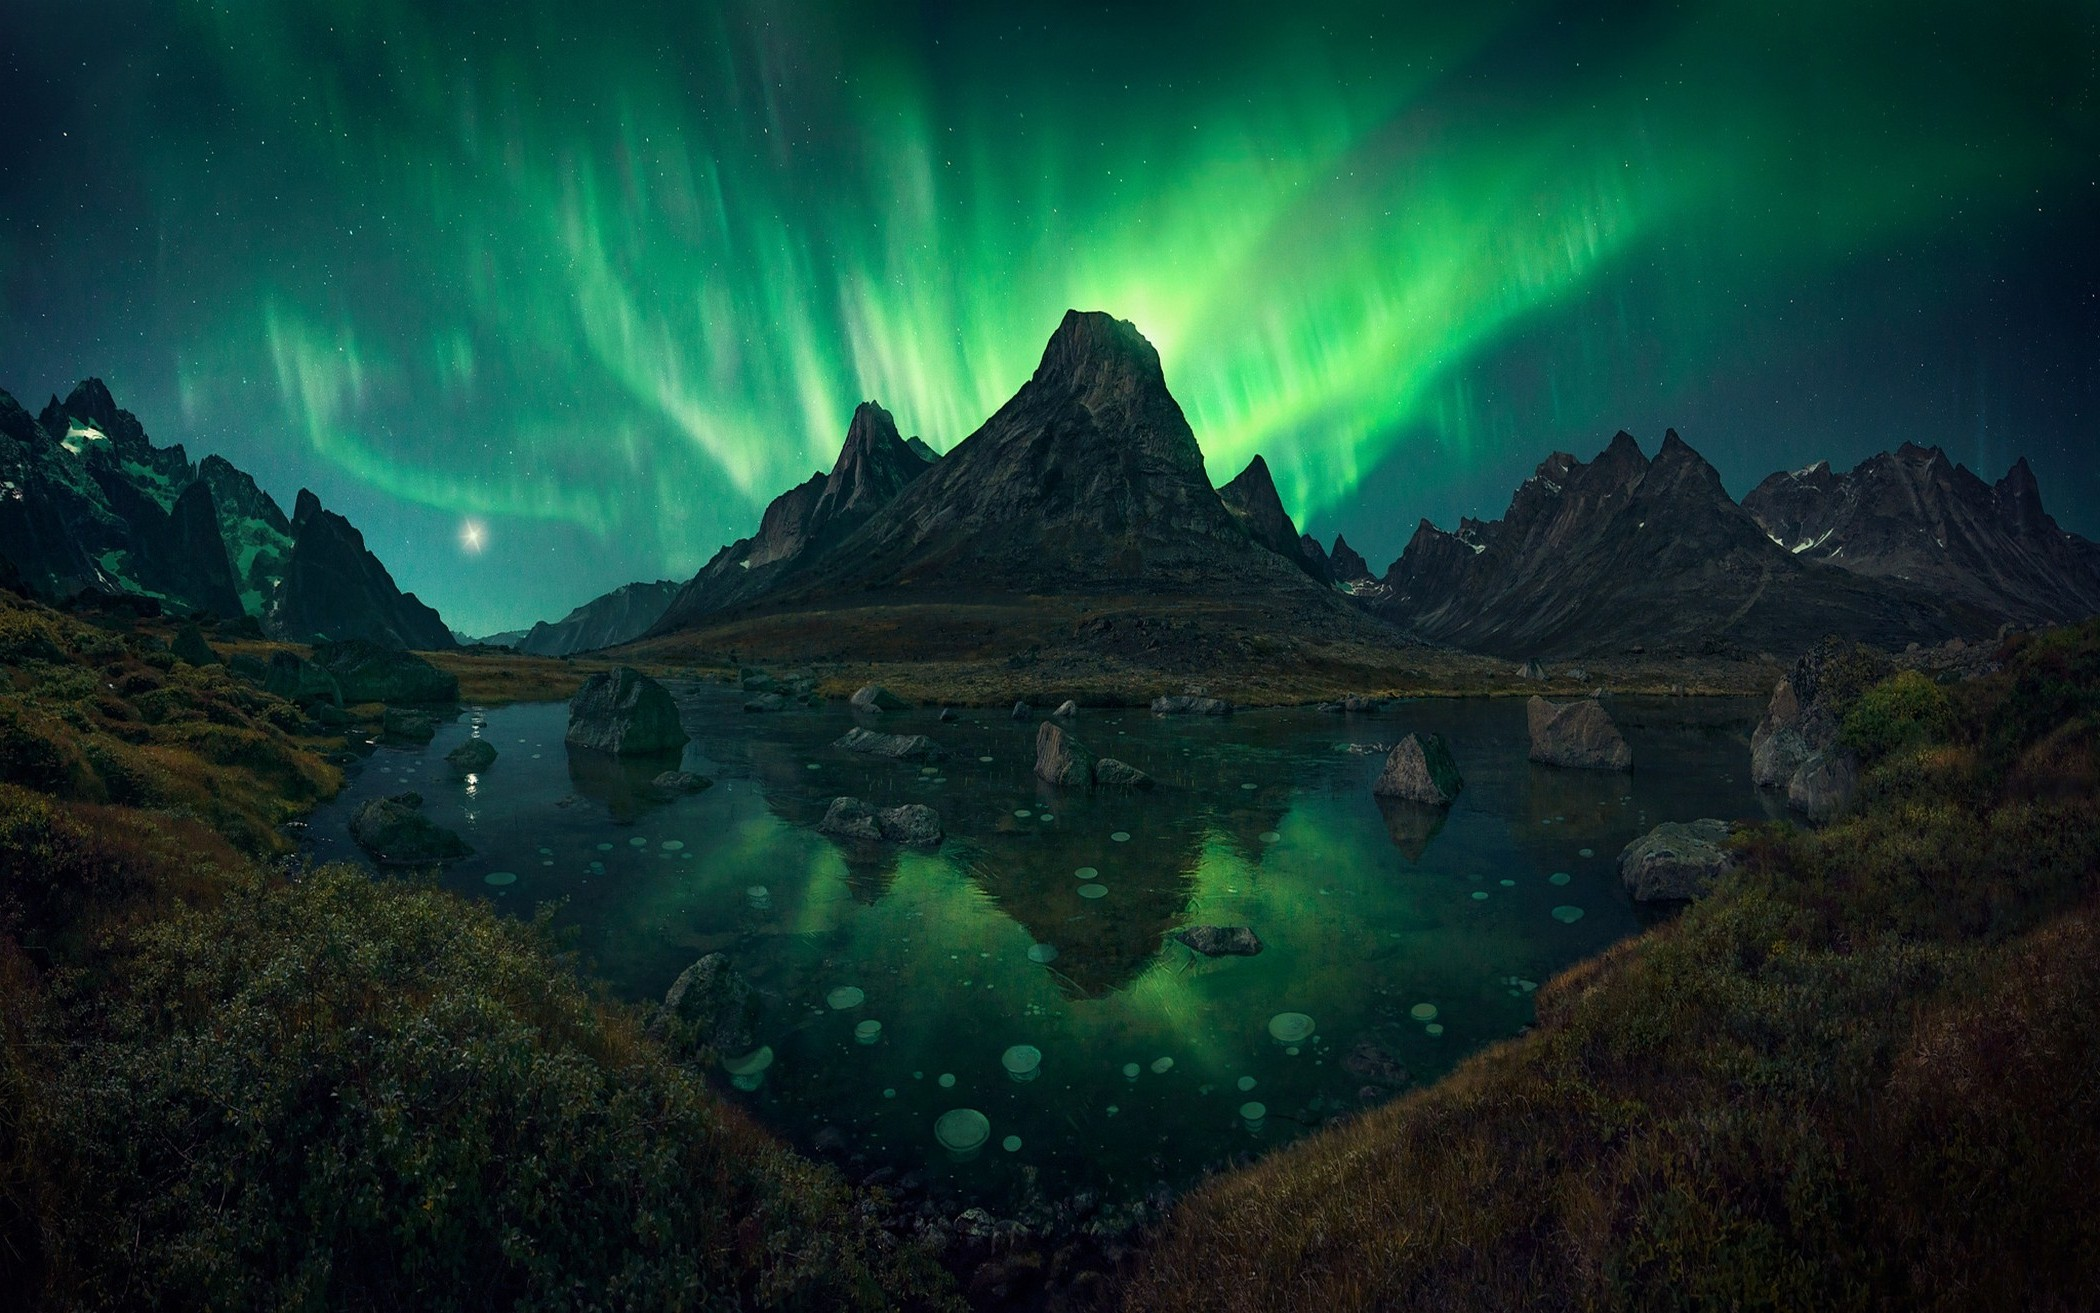 3d Wallpapers For Home Screen Nature Landscape Aurorae Mountain Lake Grass Shrubs